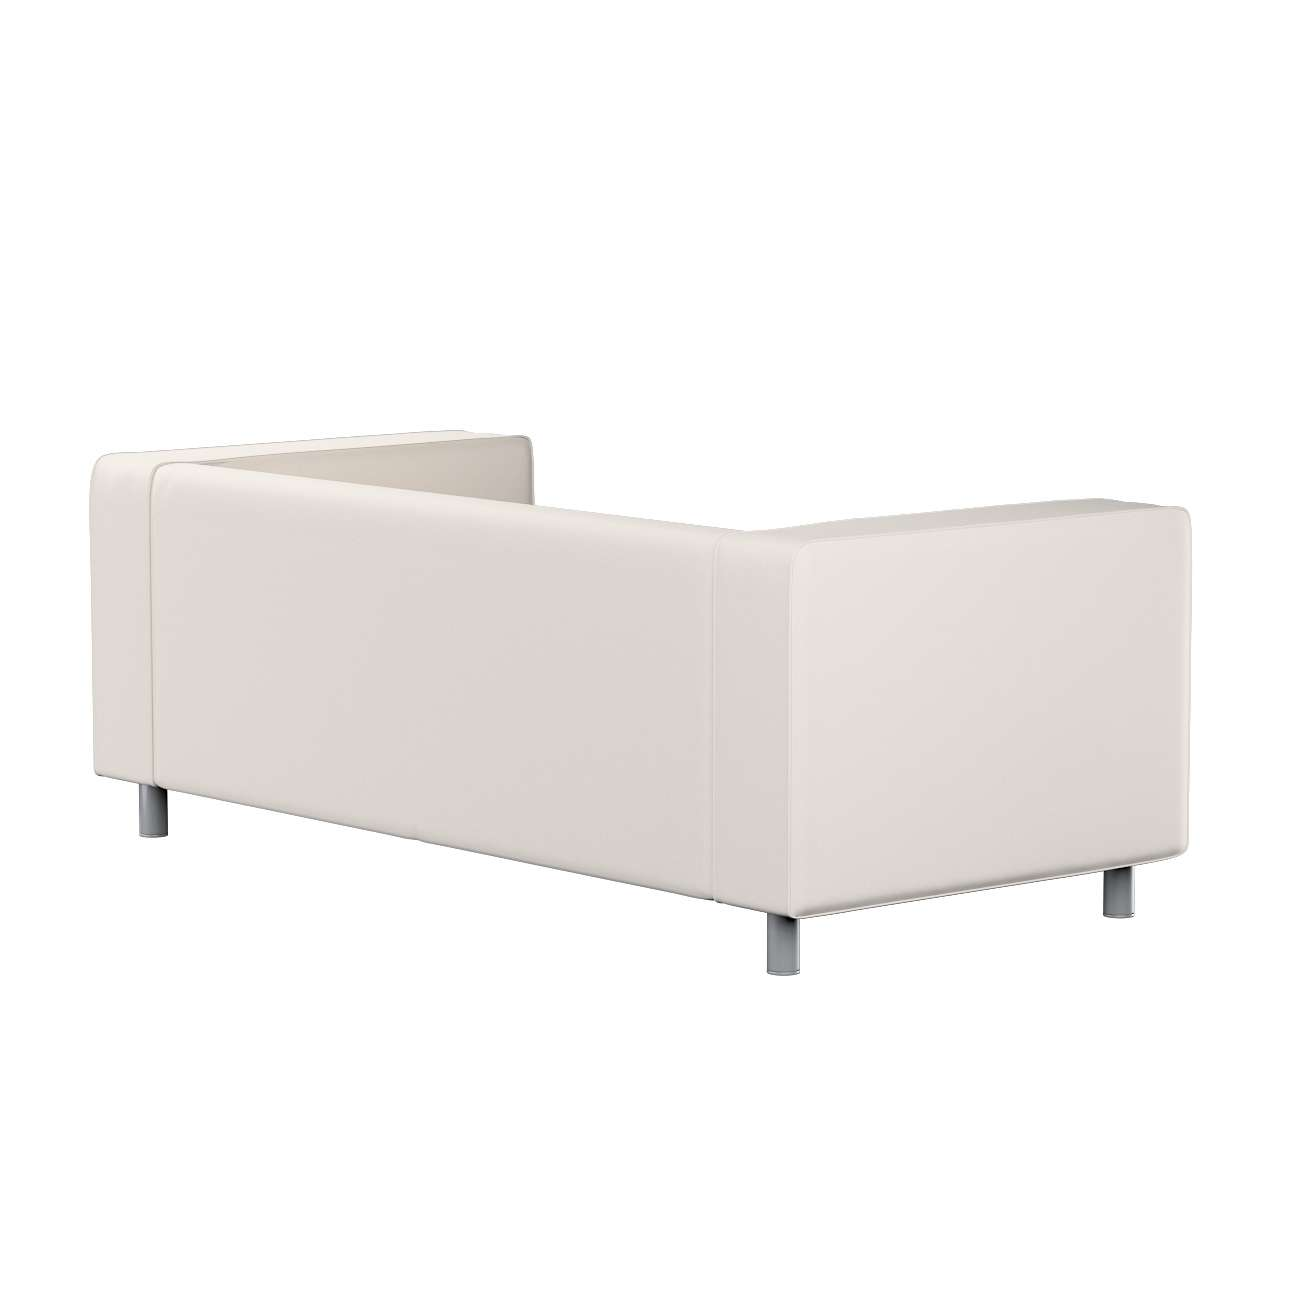 Klippan 2-seater sofa cover in collection Etna, fabric: 705-01